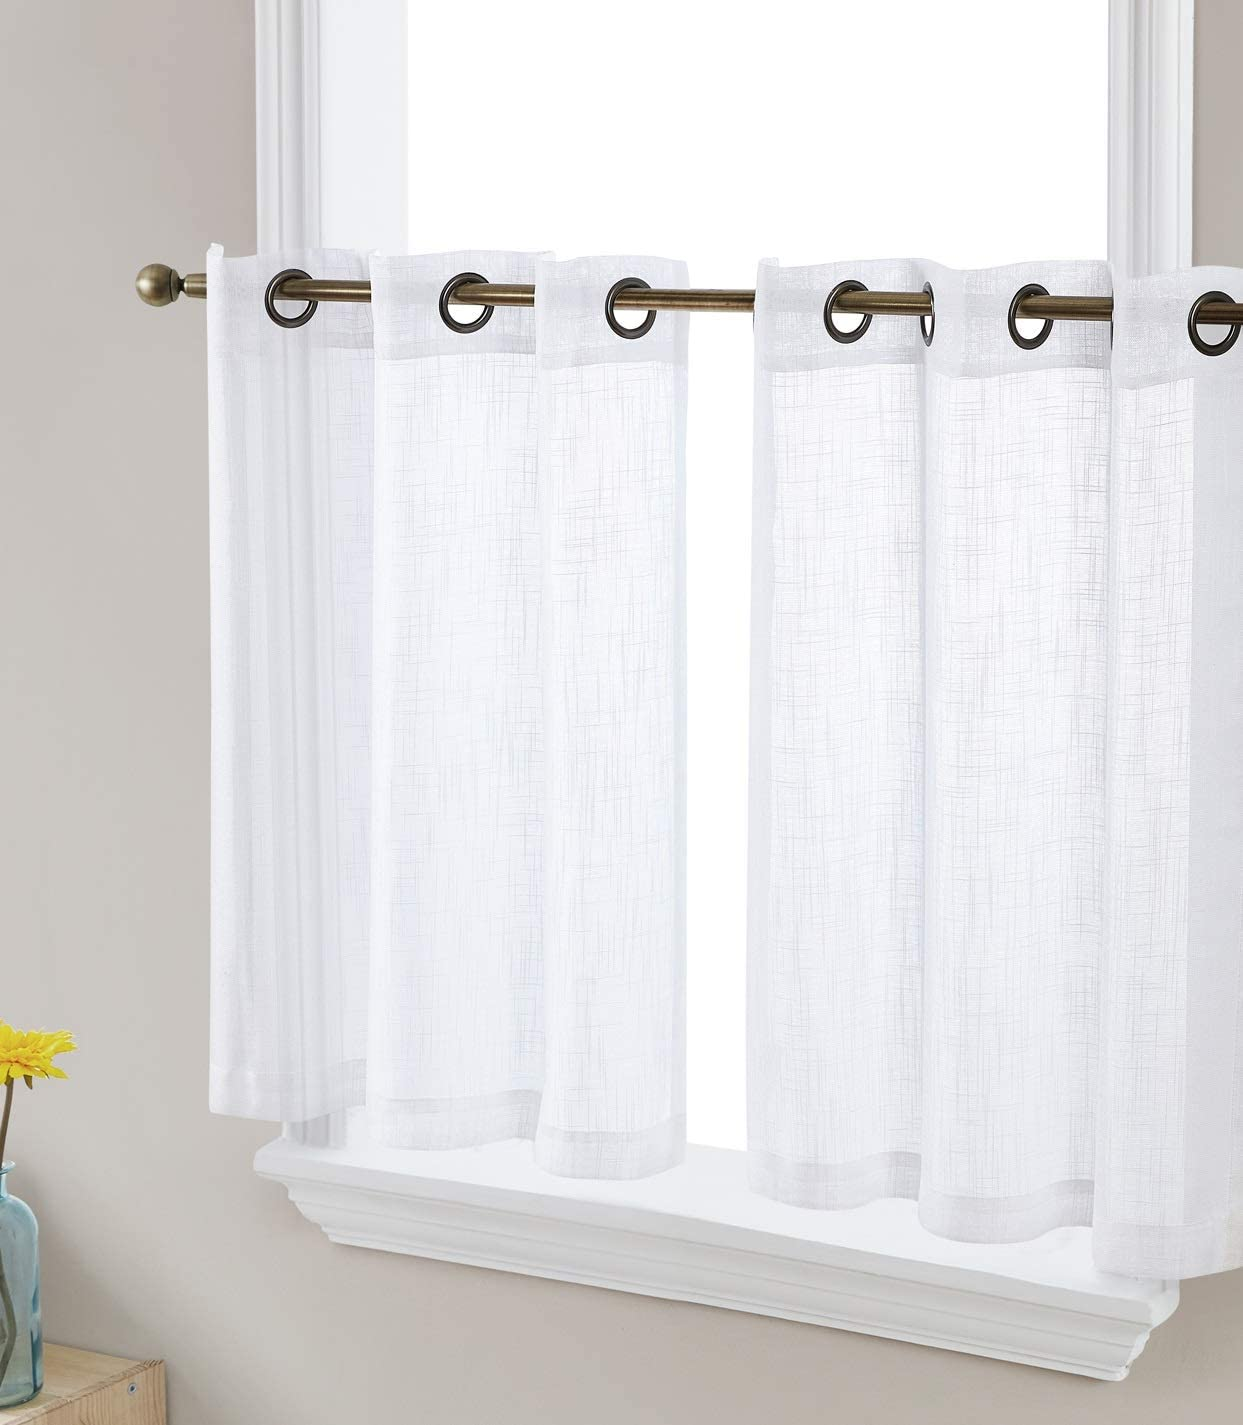 HLC.ME Abbey Faux Linen Textured Semi Sheer Privacy Light Filtering Transparent Grommet Short Thick Cafe Curtain Tiers for Small Windows, Kitchen & Bathroom, Set of 2 (35 W x 2 4 L, White)